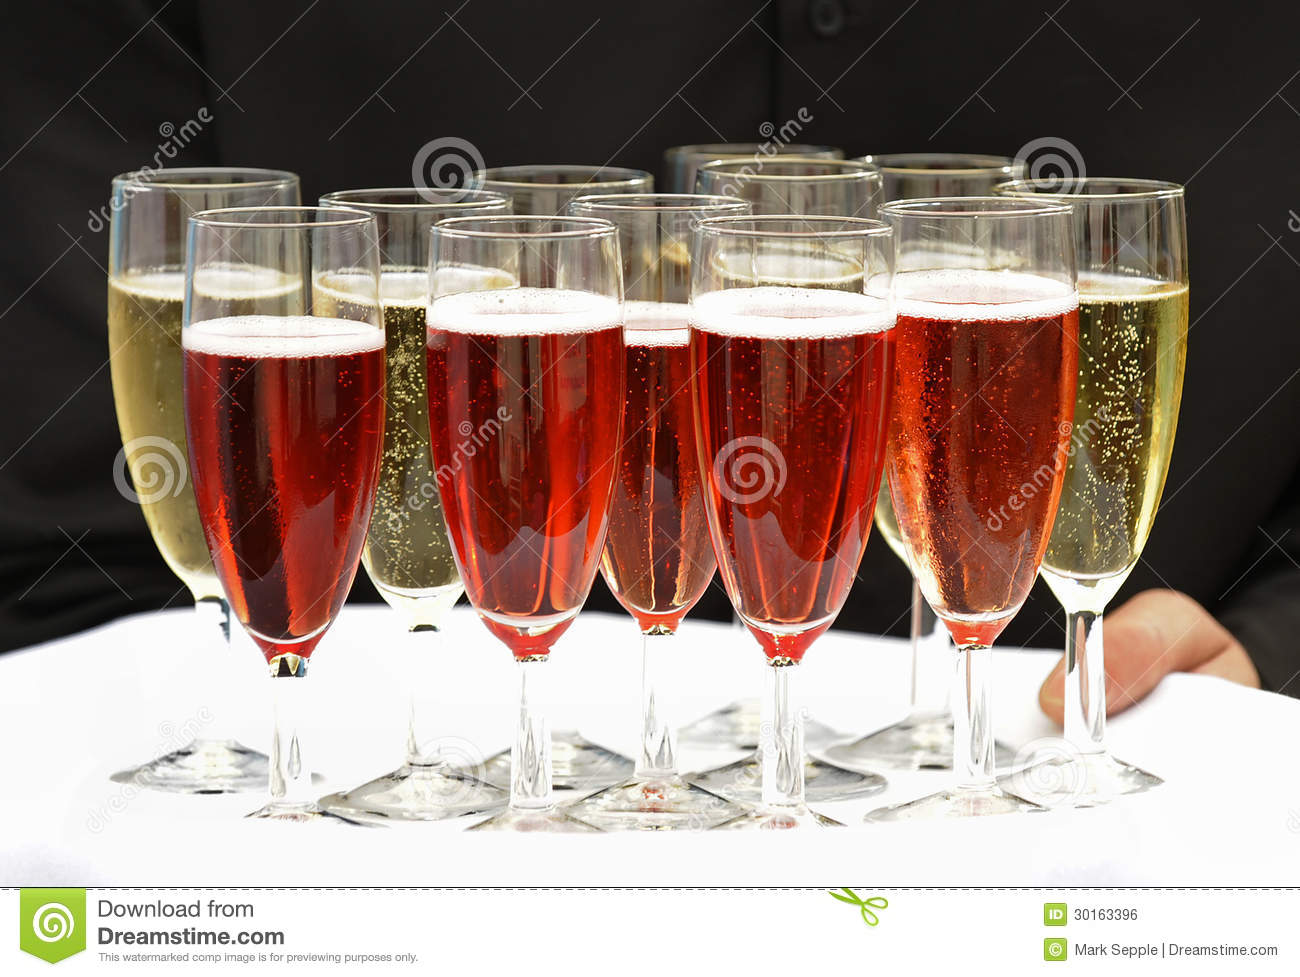 Try of sparkling wine